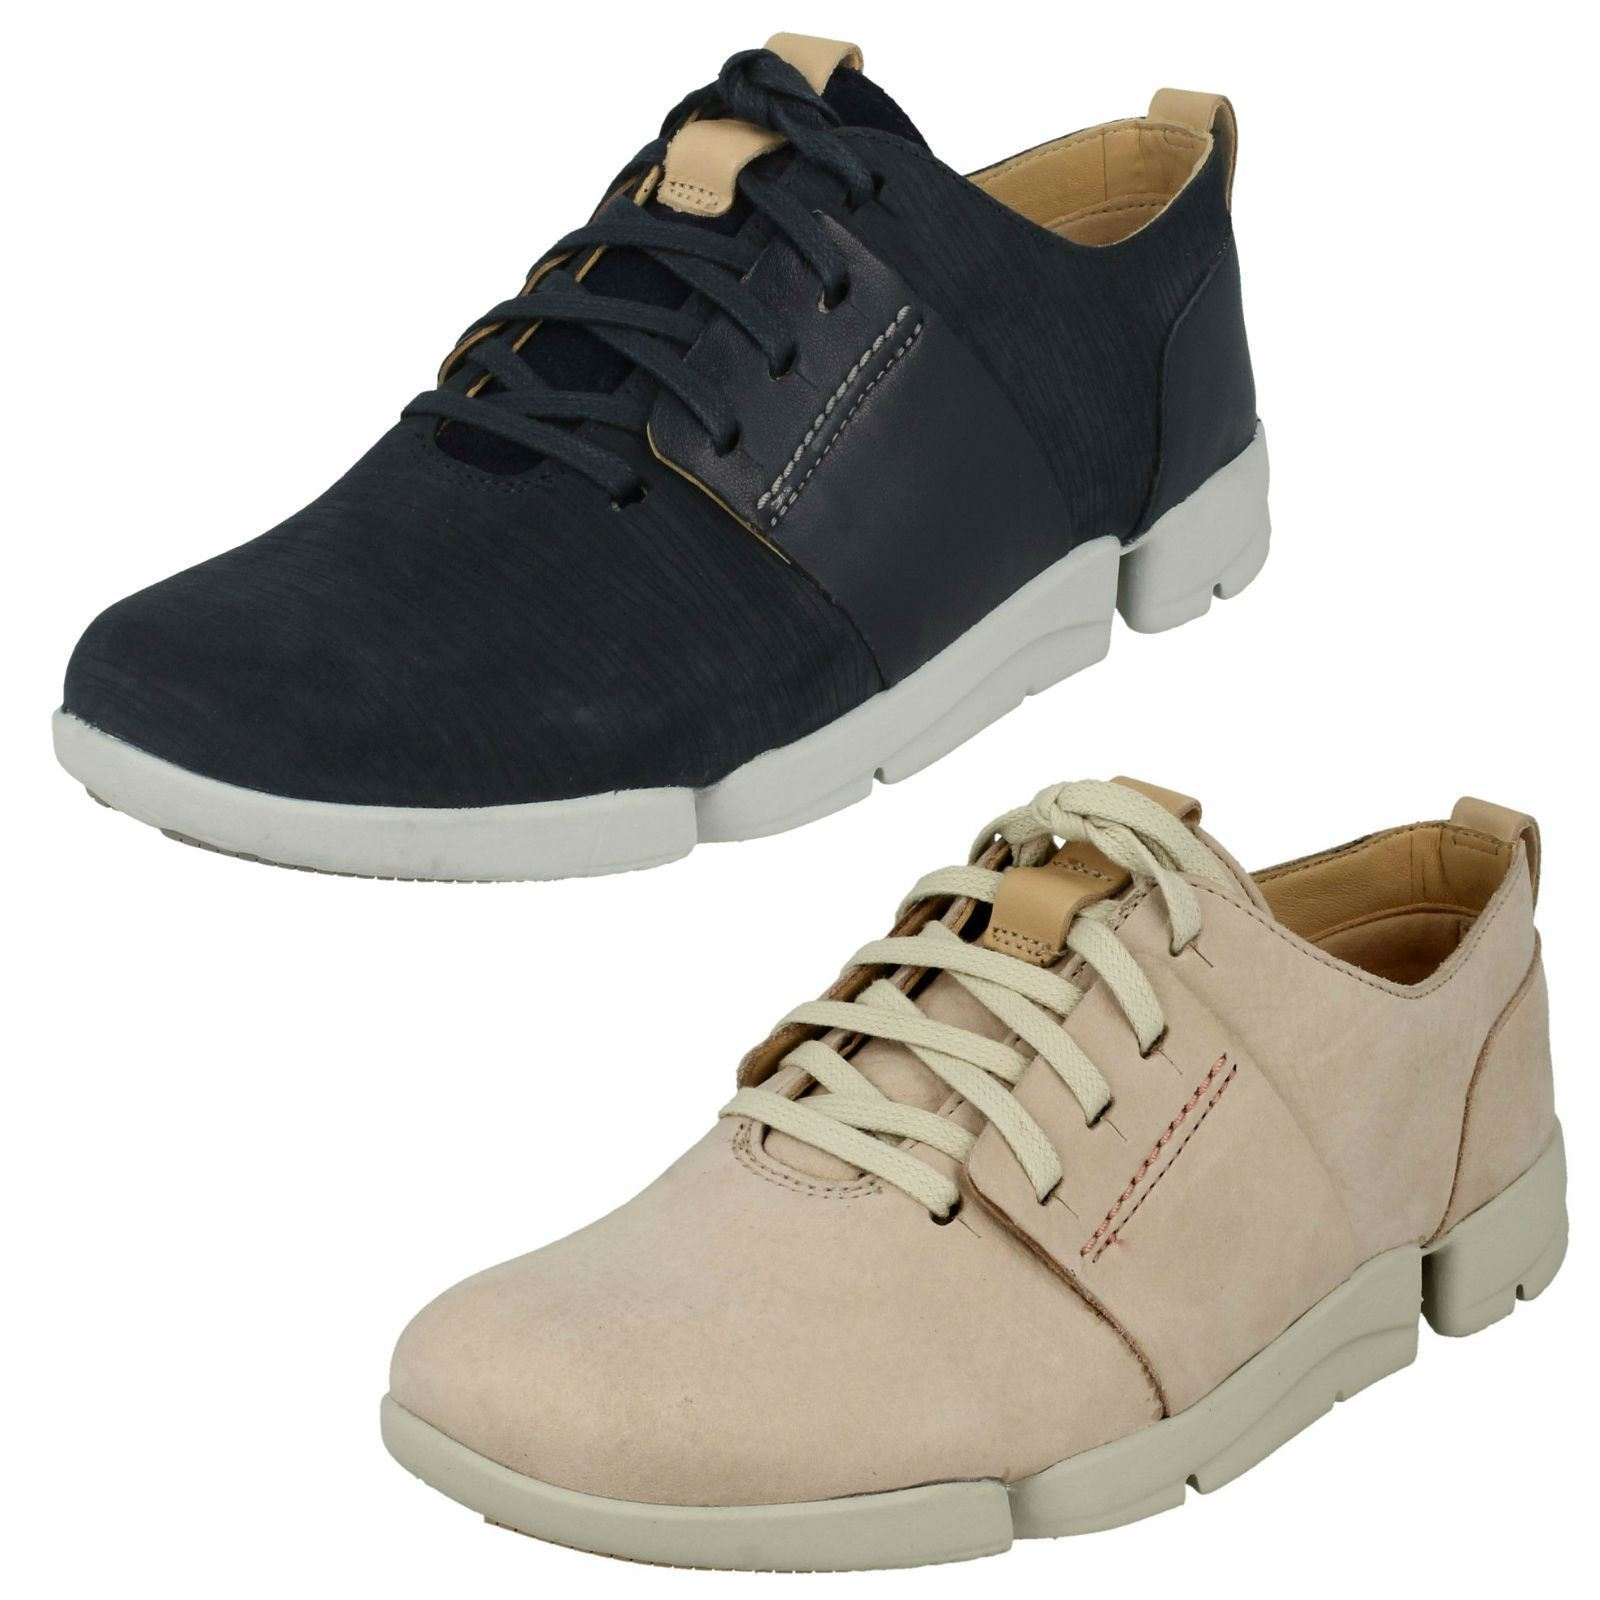 Ladies Clarks Tri Caitlin Navy Or Nude Pink Leather Casual Lace Ups